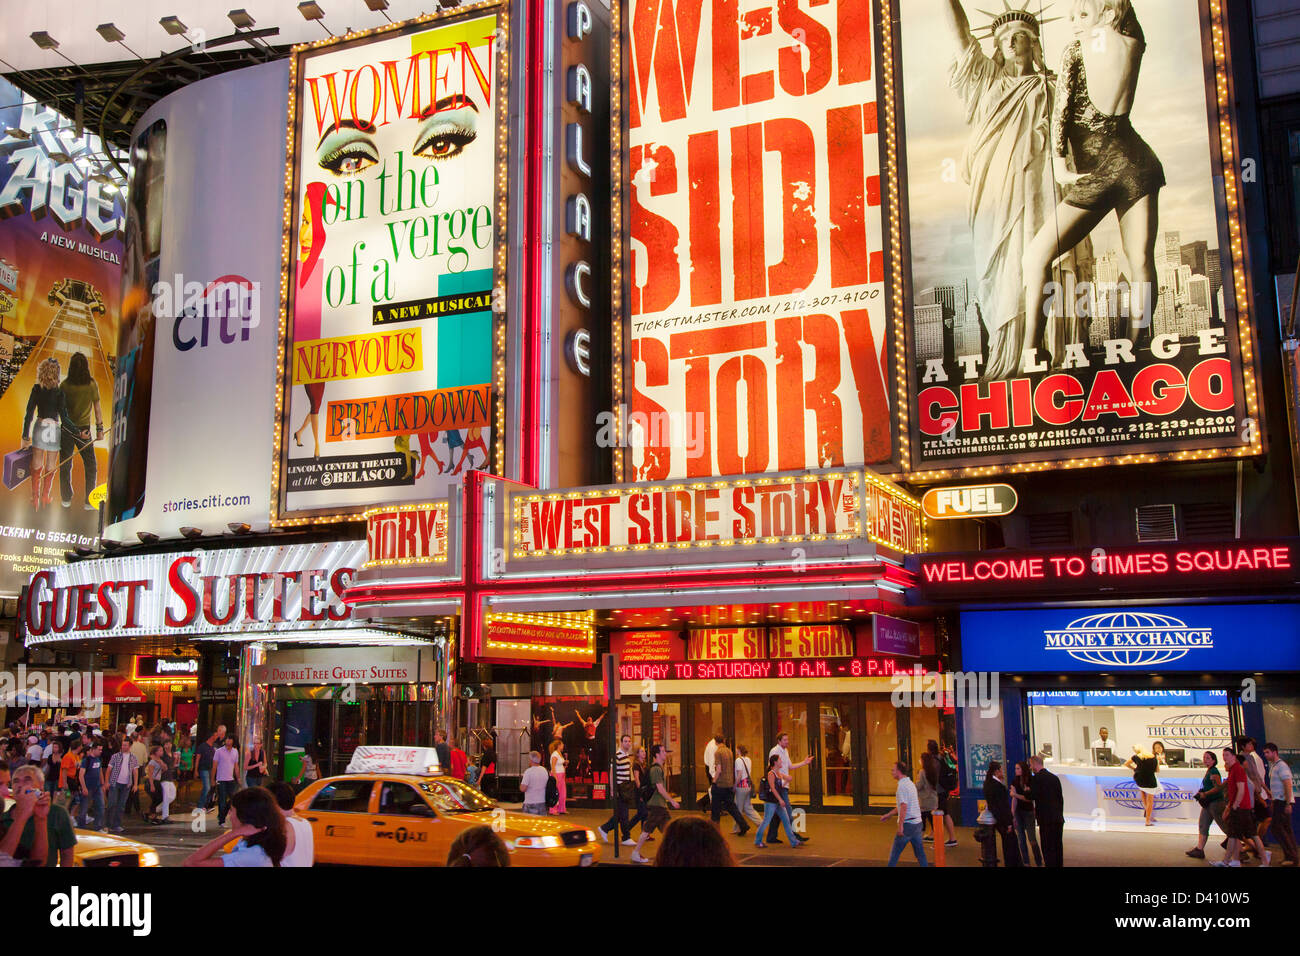 Broadway show signs along 42nd Street at Times Square, New York City, USA - Stock Image